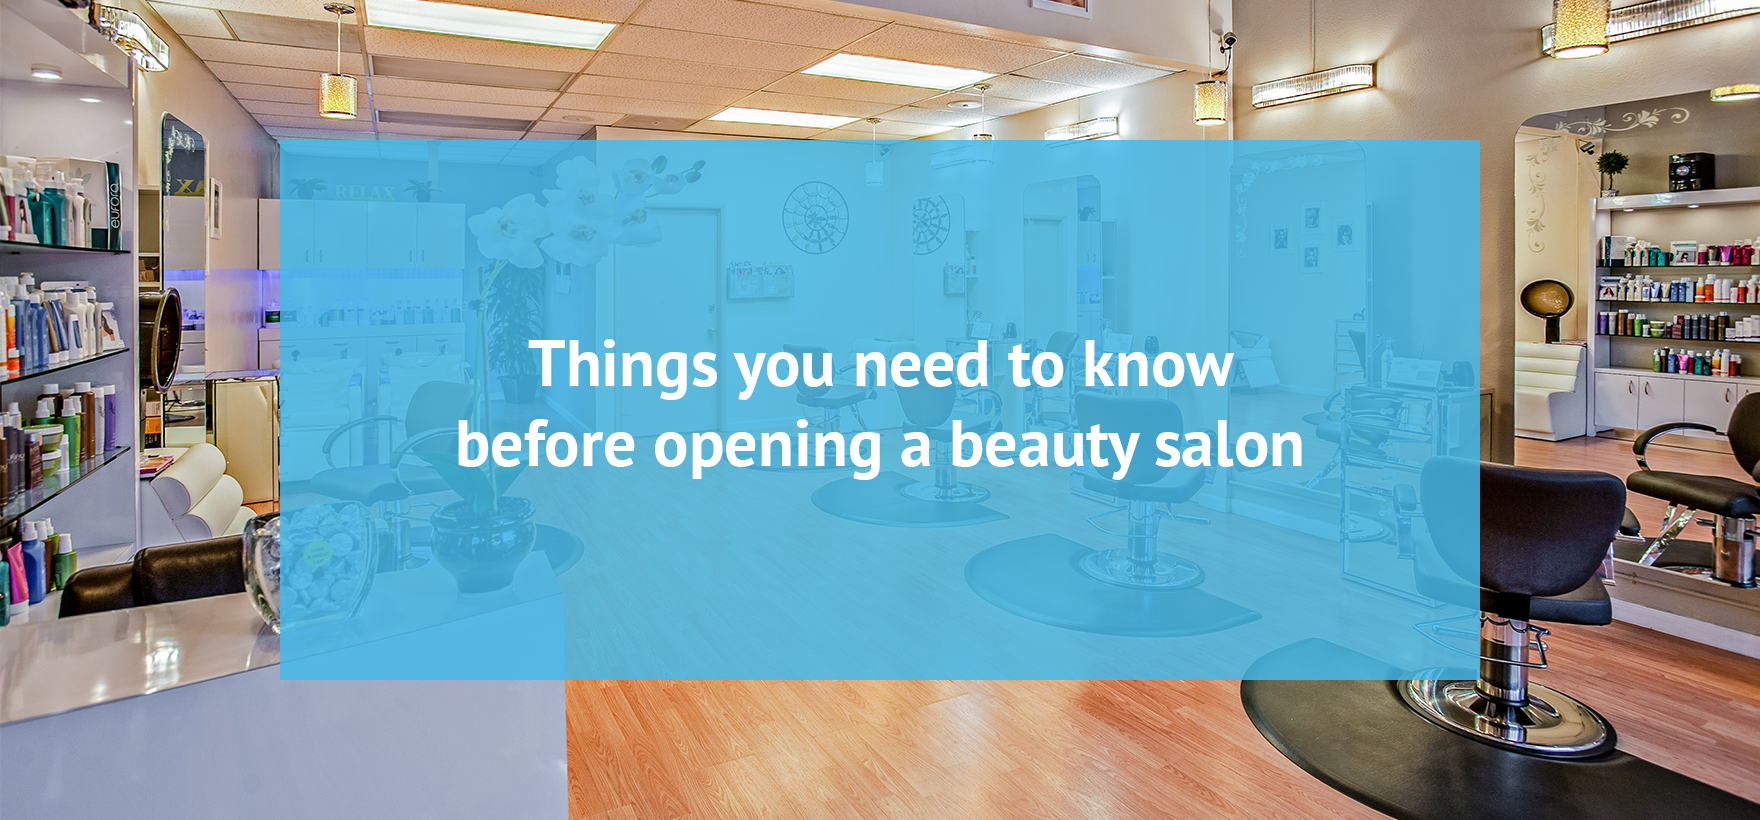 Things You Need to Know Before Opening a Beauty Salon